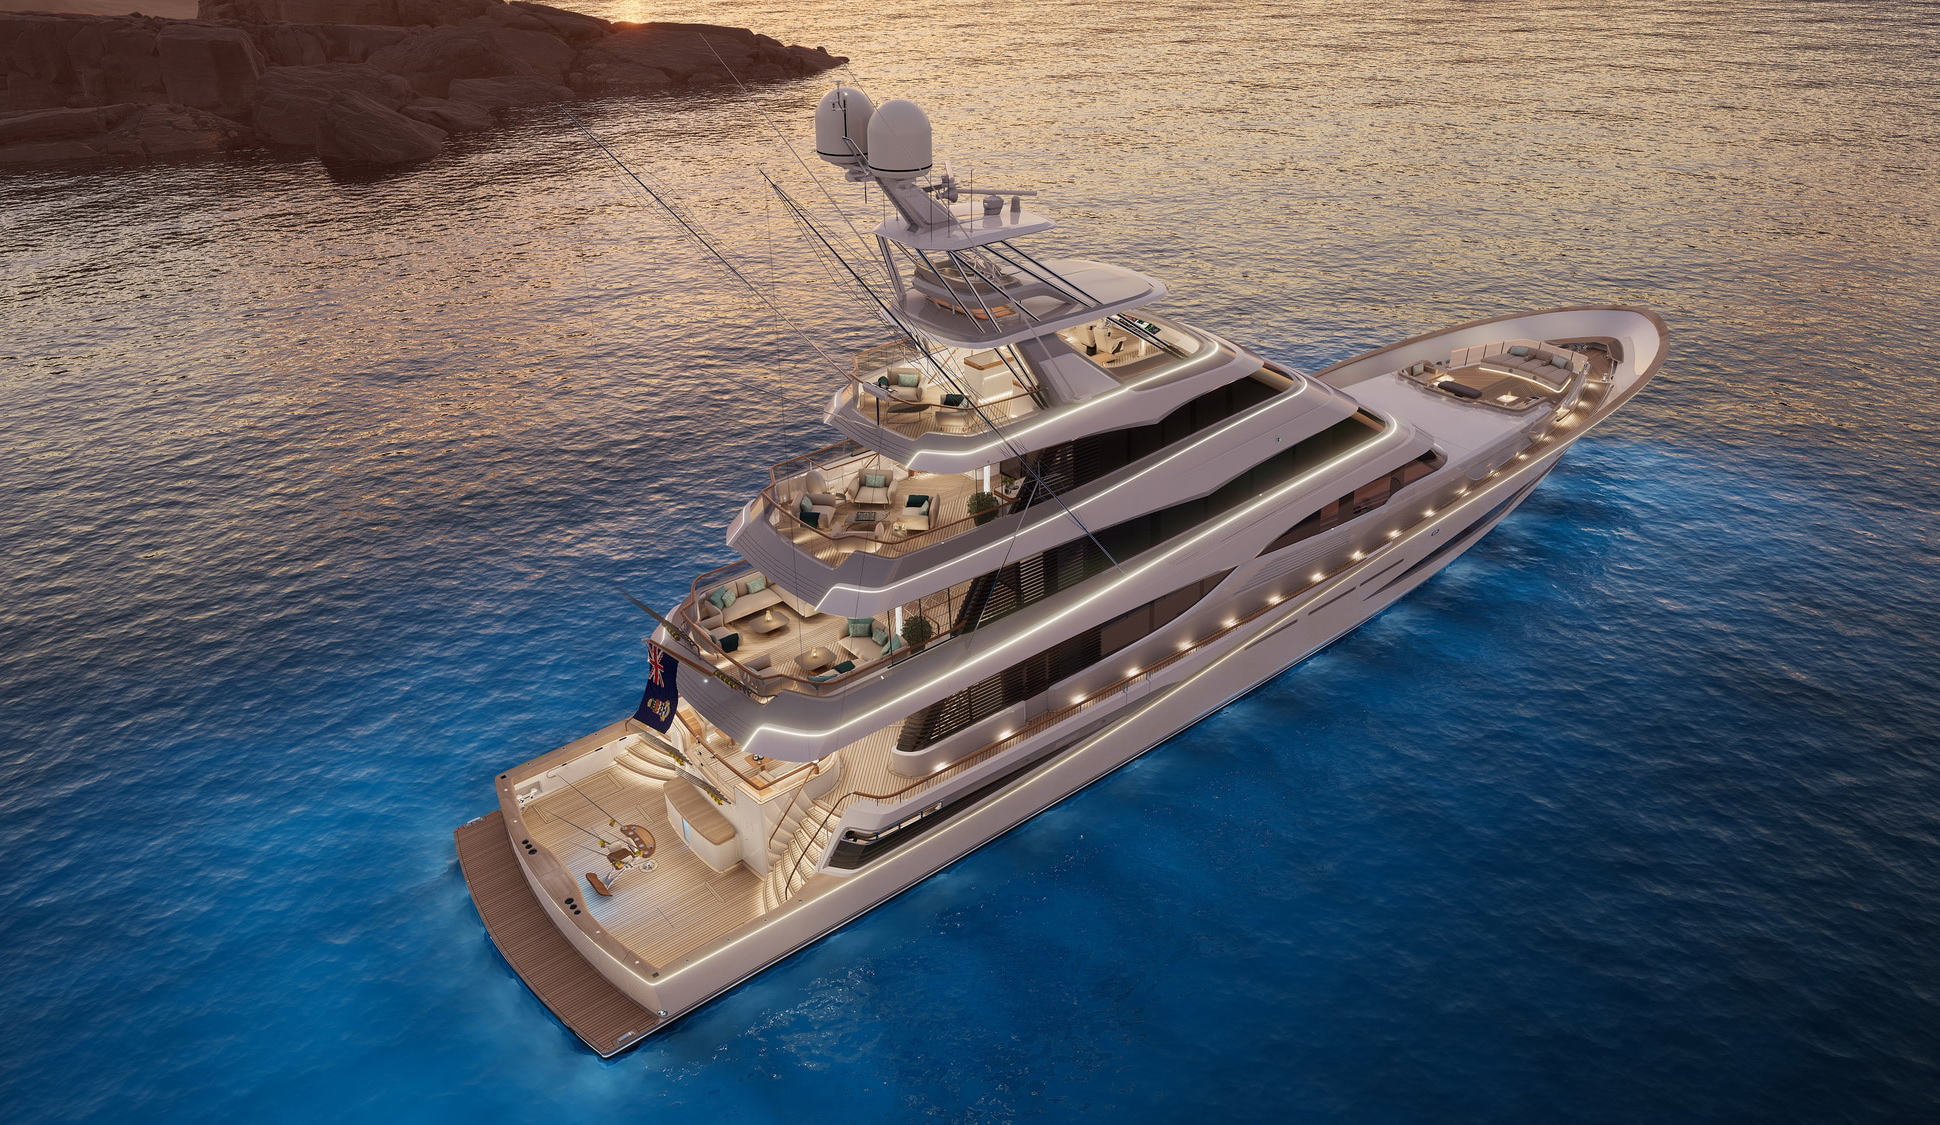 Biggest sportsfish yacht: Royal Huisman to build 52m aluminium whopper